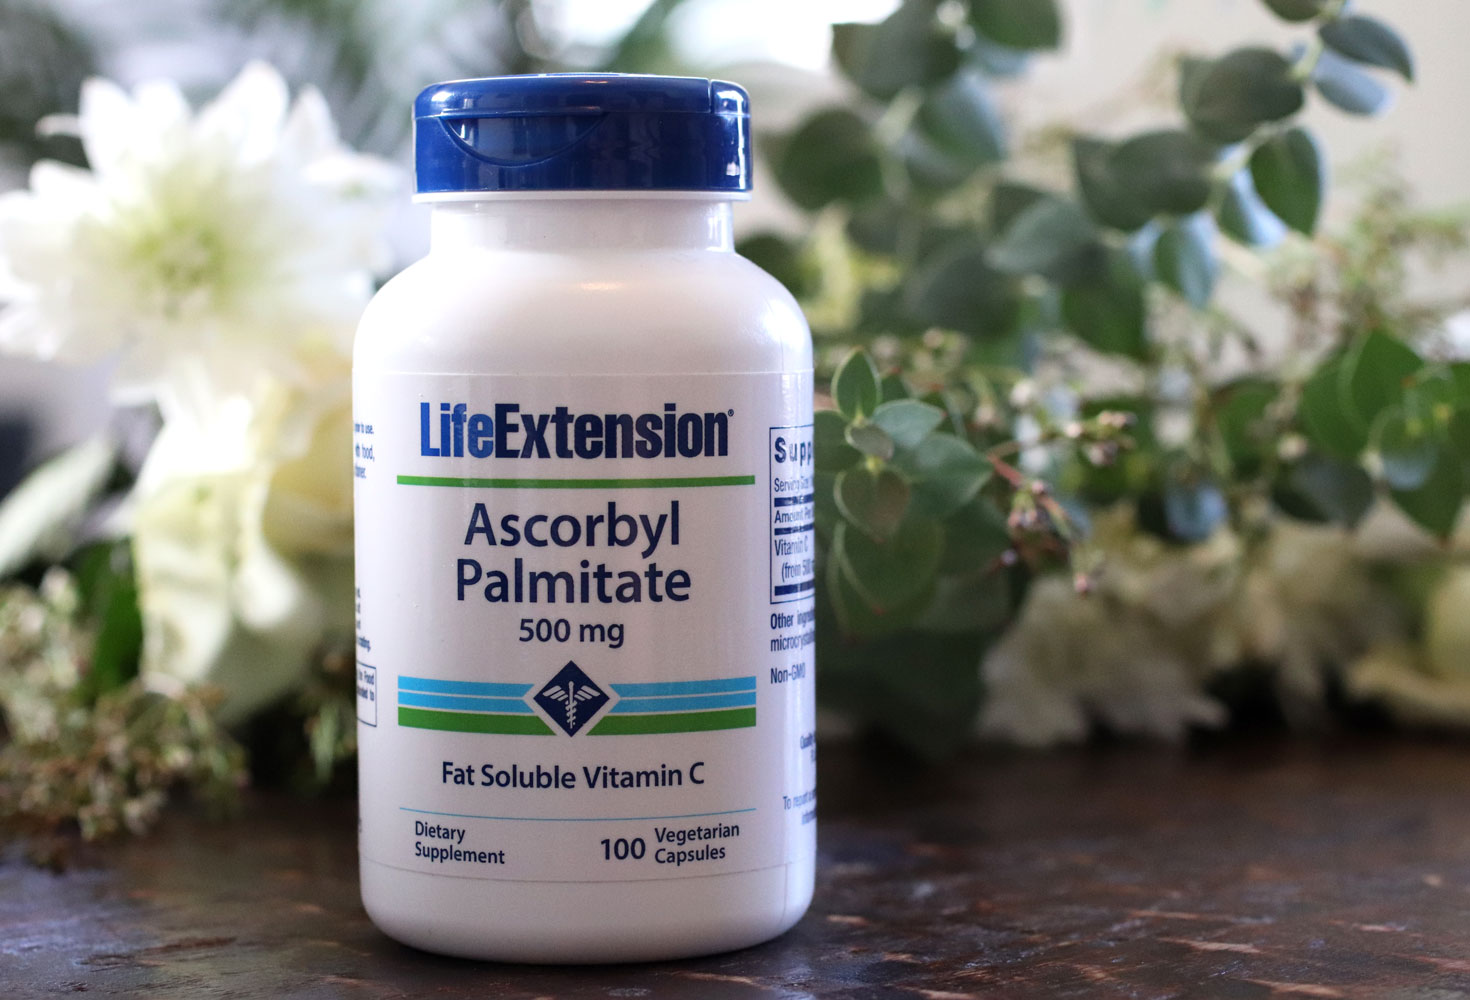 Ascorbyl palmitate fat soluble Vitamin C by Life Extension